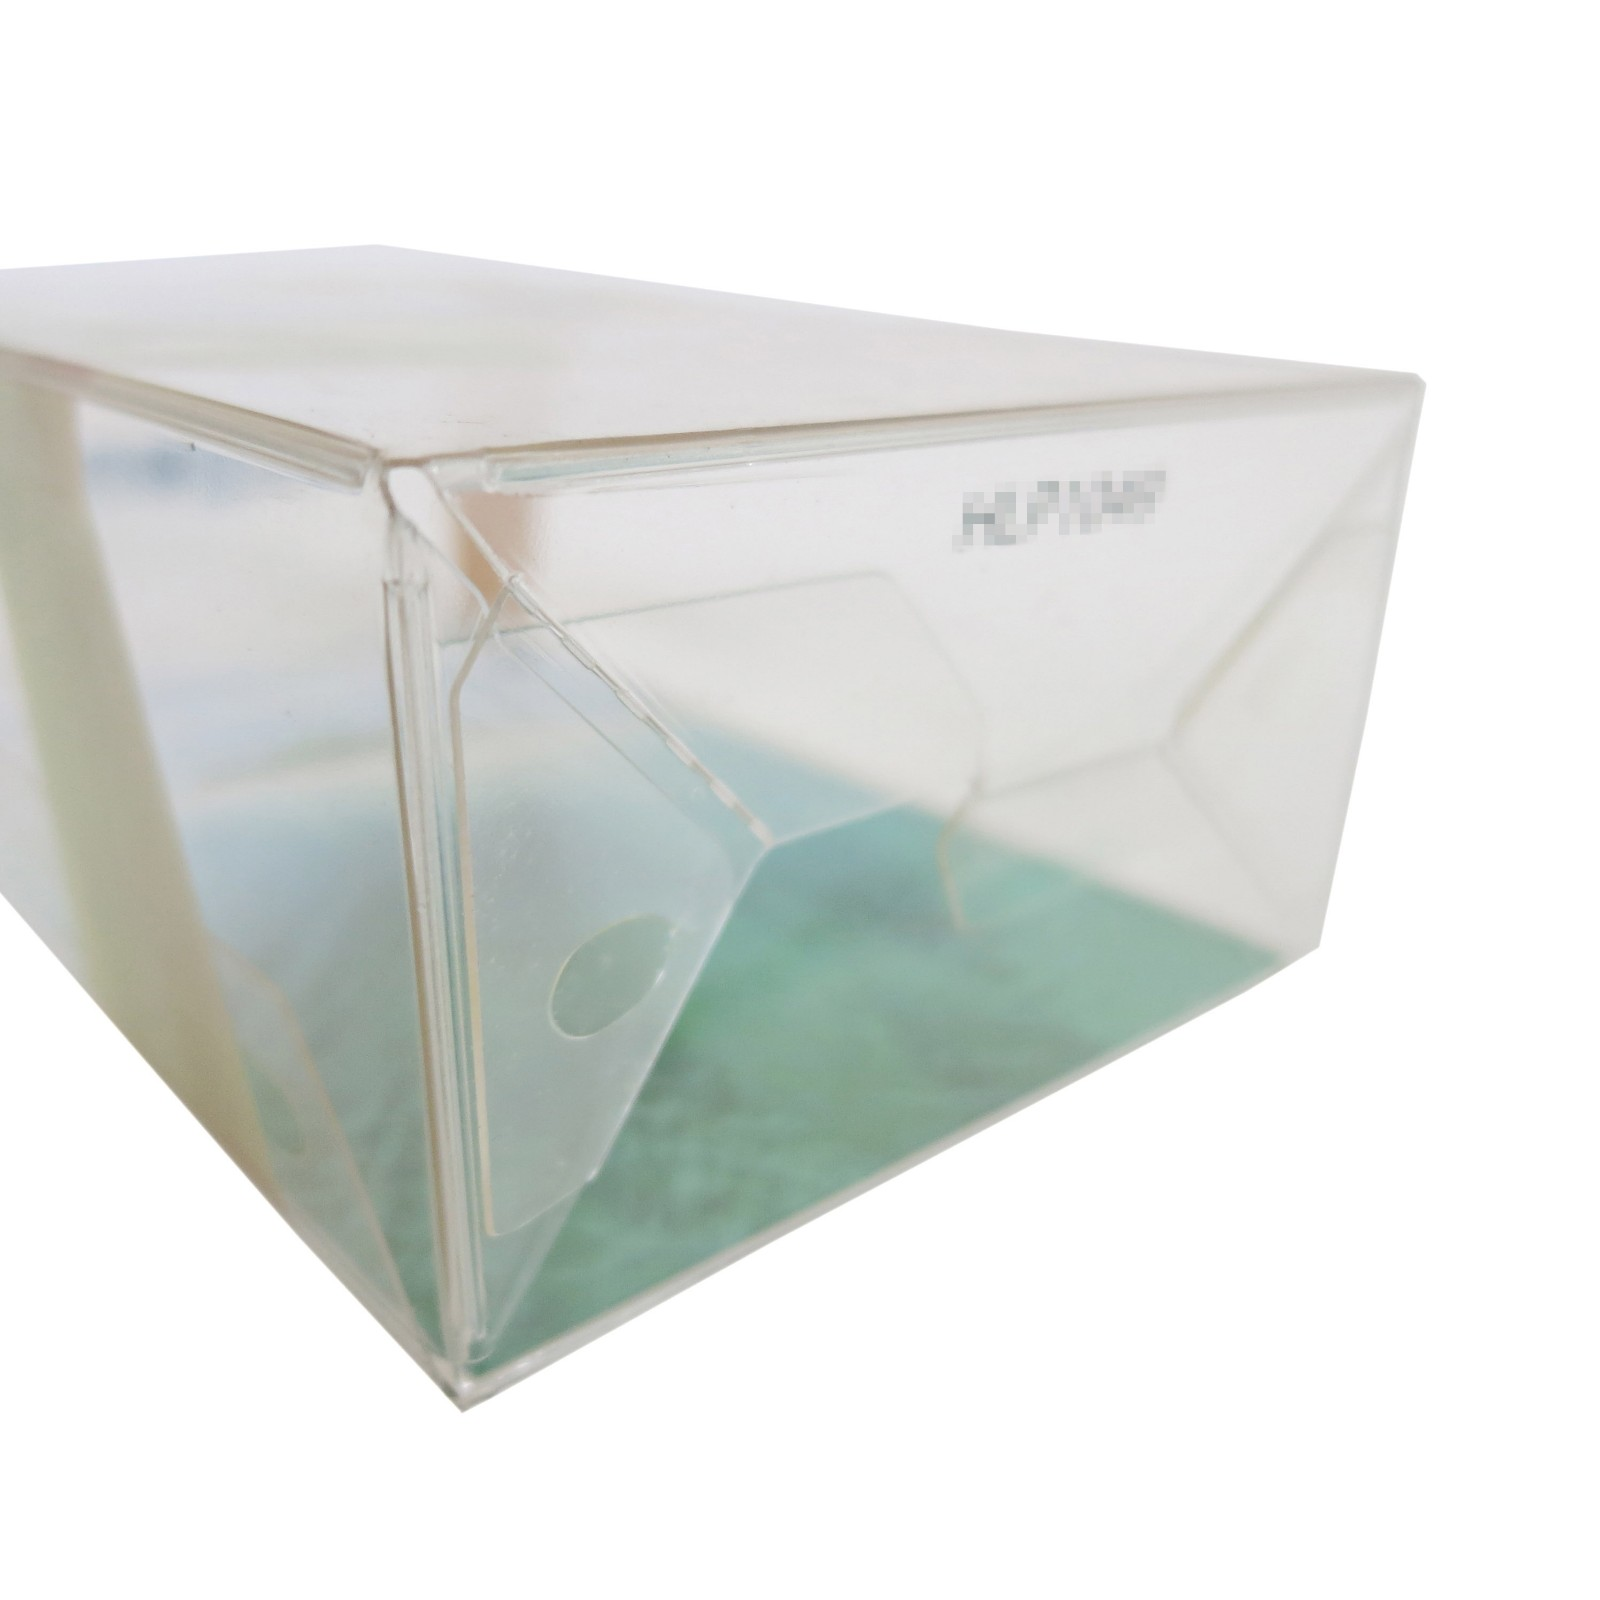 Yijianxing Plastic Products superior pvc box manufacturers free quote for gifts-3